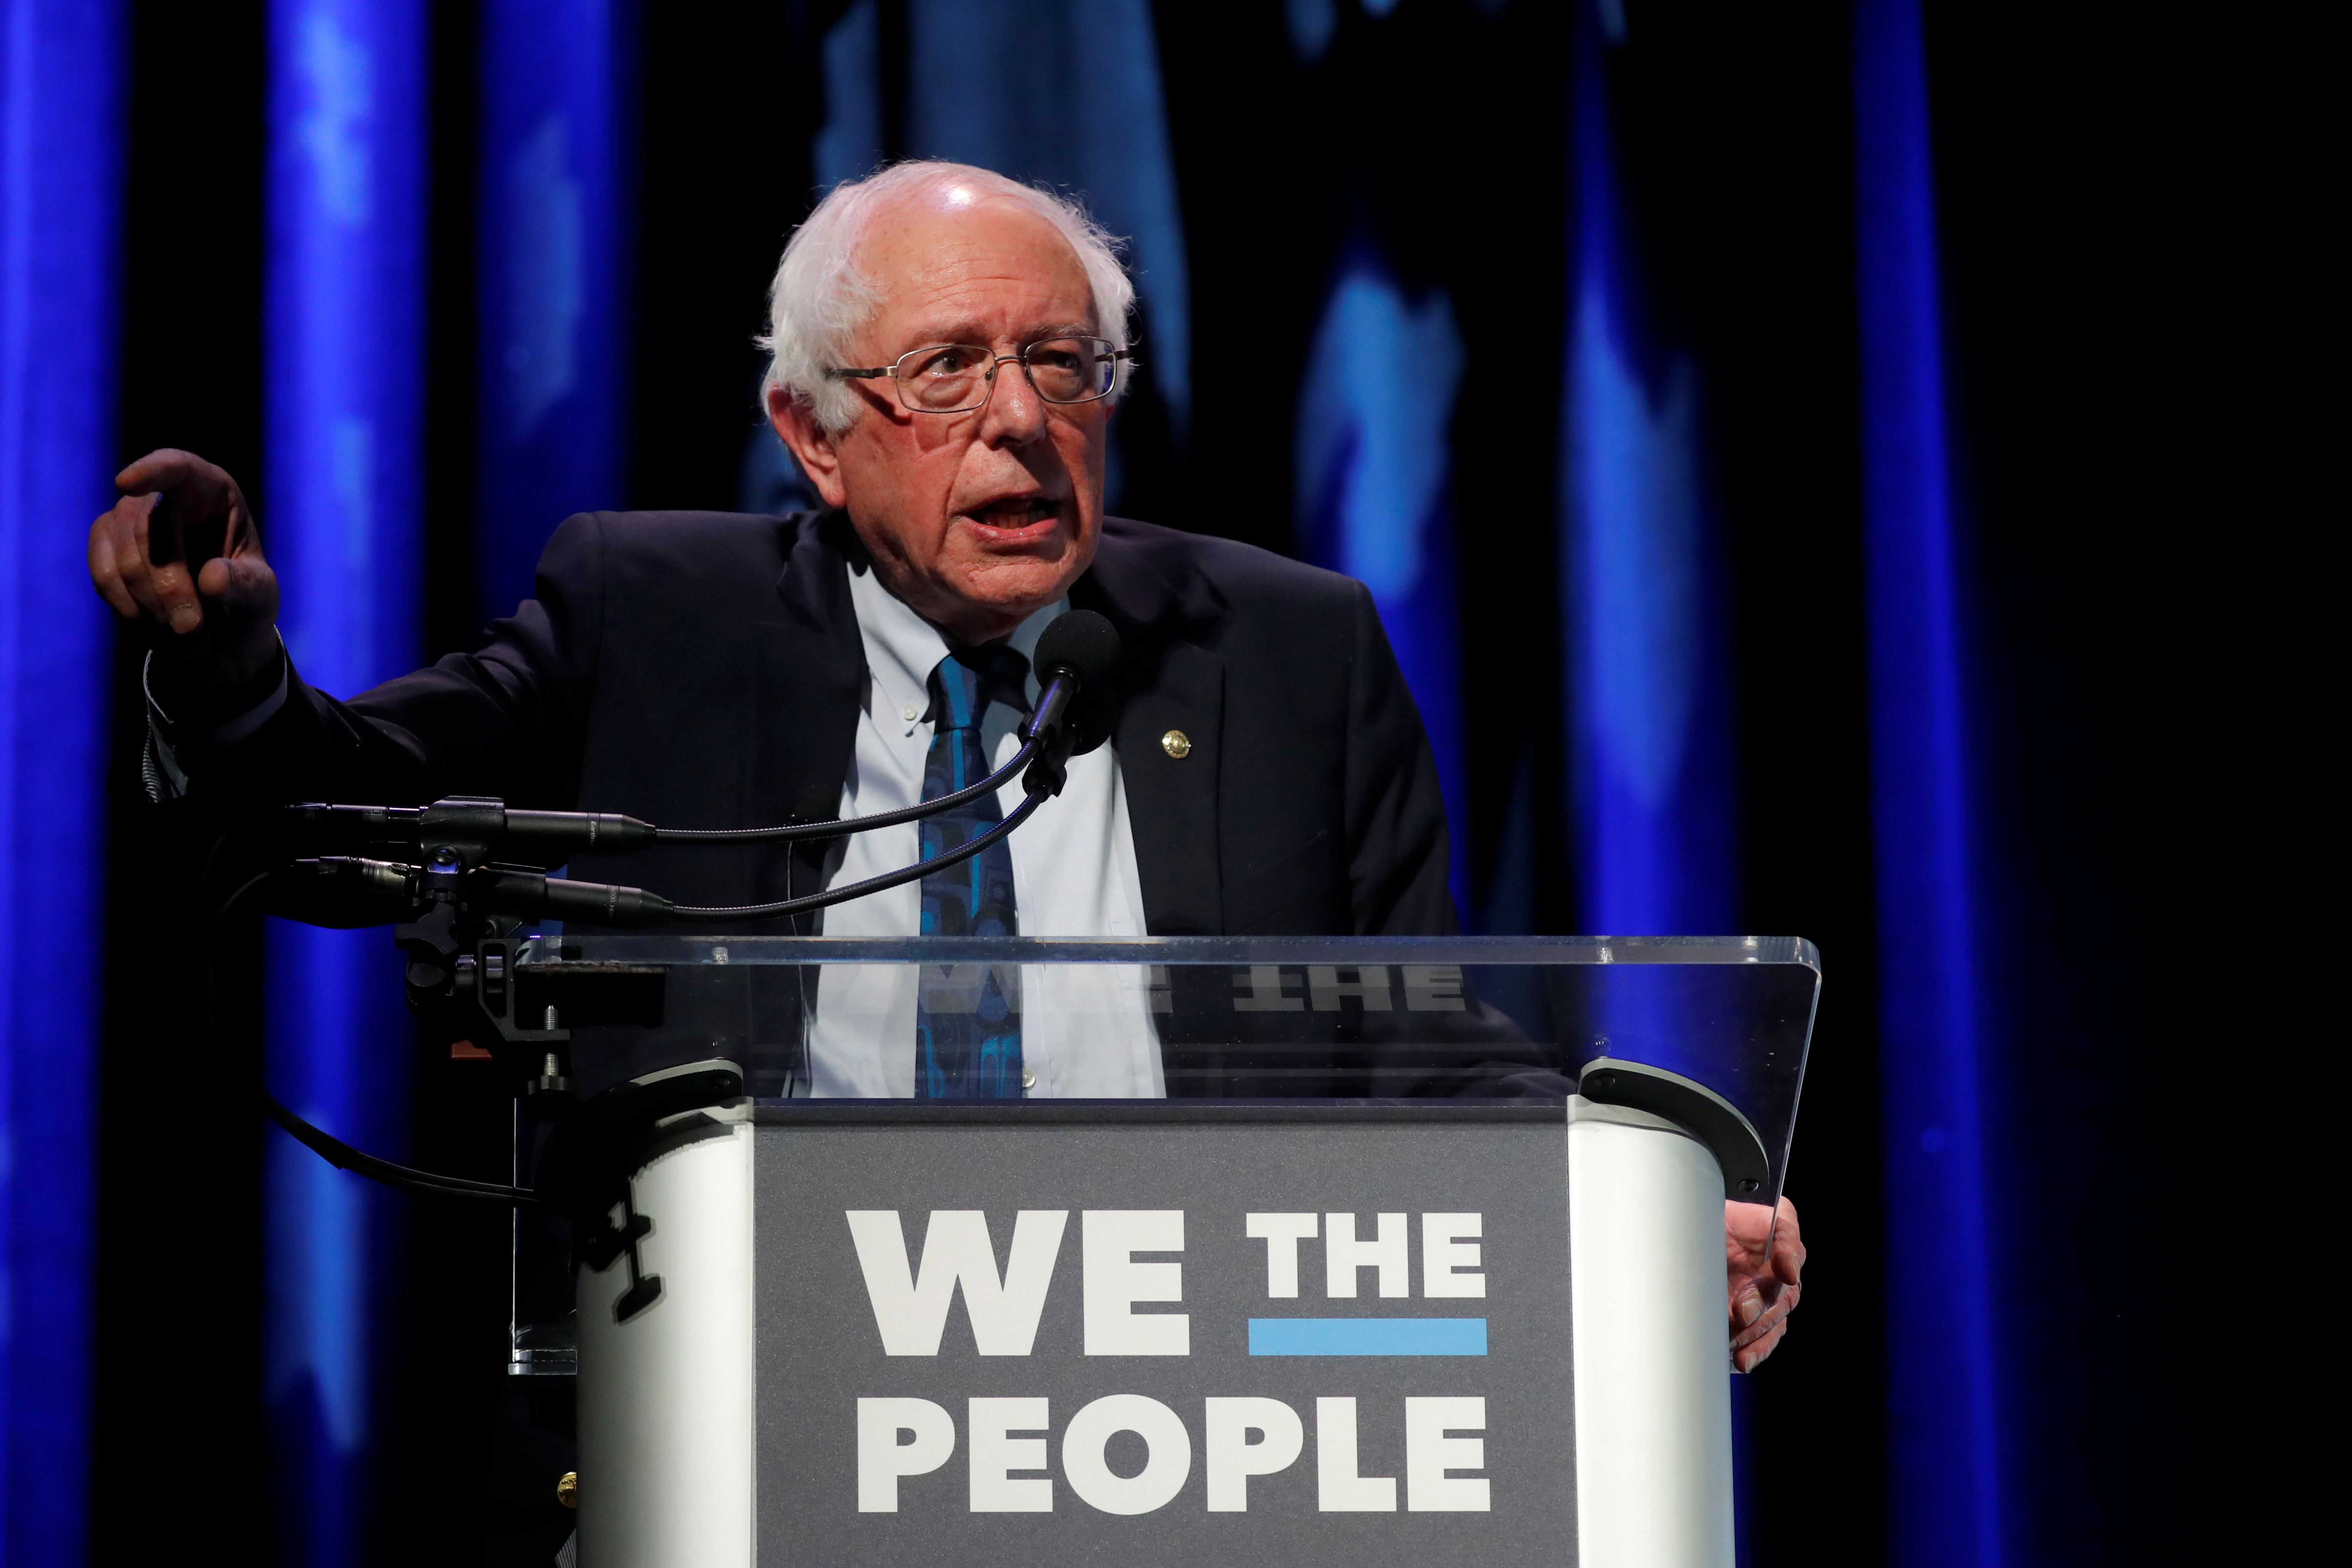 U.S. 2020 Democratic presidential candidate and Senator Bernie Sanders participates in a moderated discussion at the We the People Summit in Washington, U.S., April 1, 2019. REUTERS/Carlos Barria